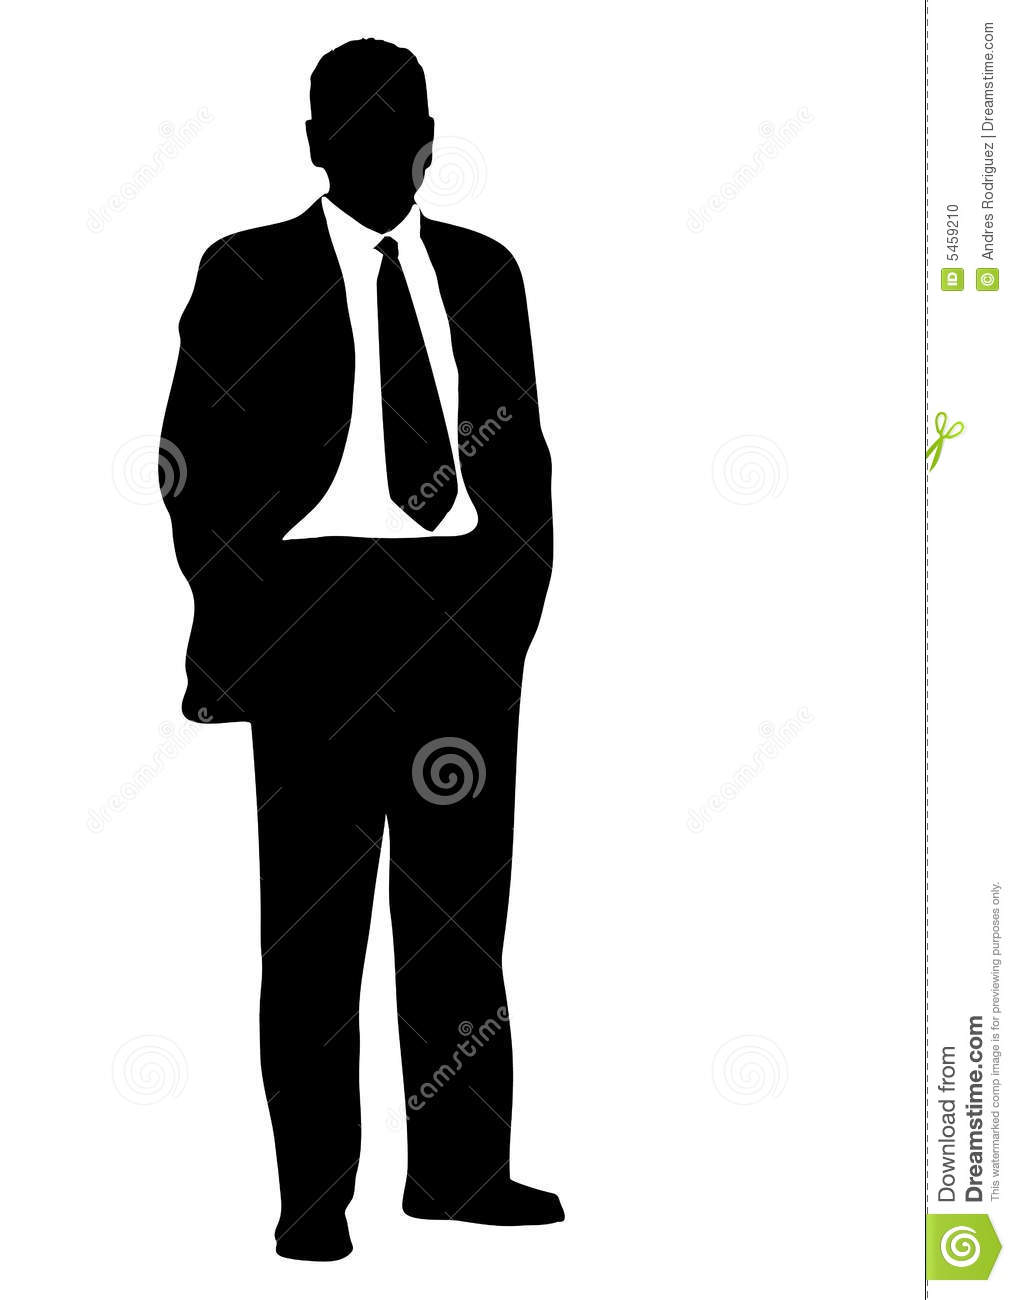 business-man-silhouette-5459210.jpg